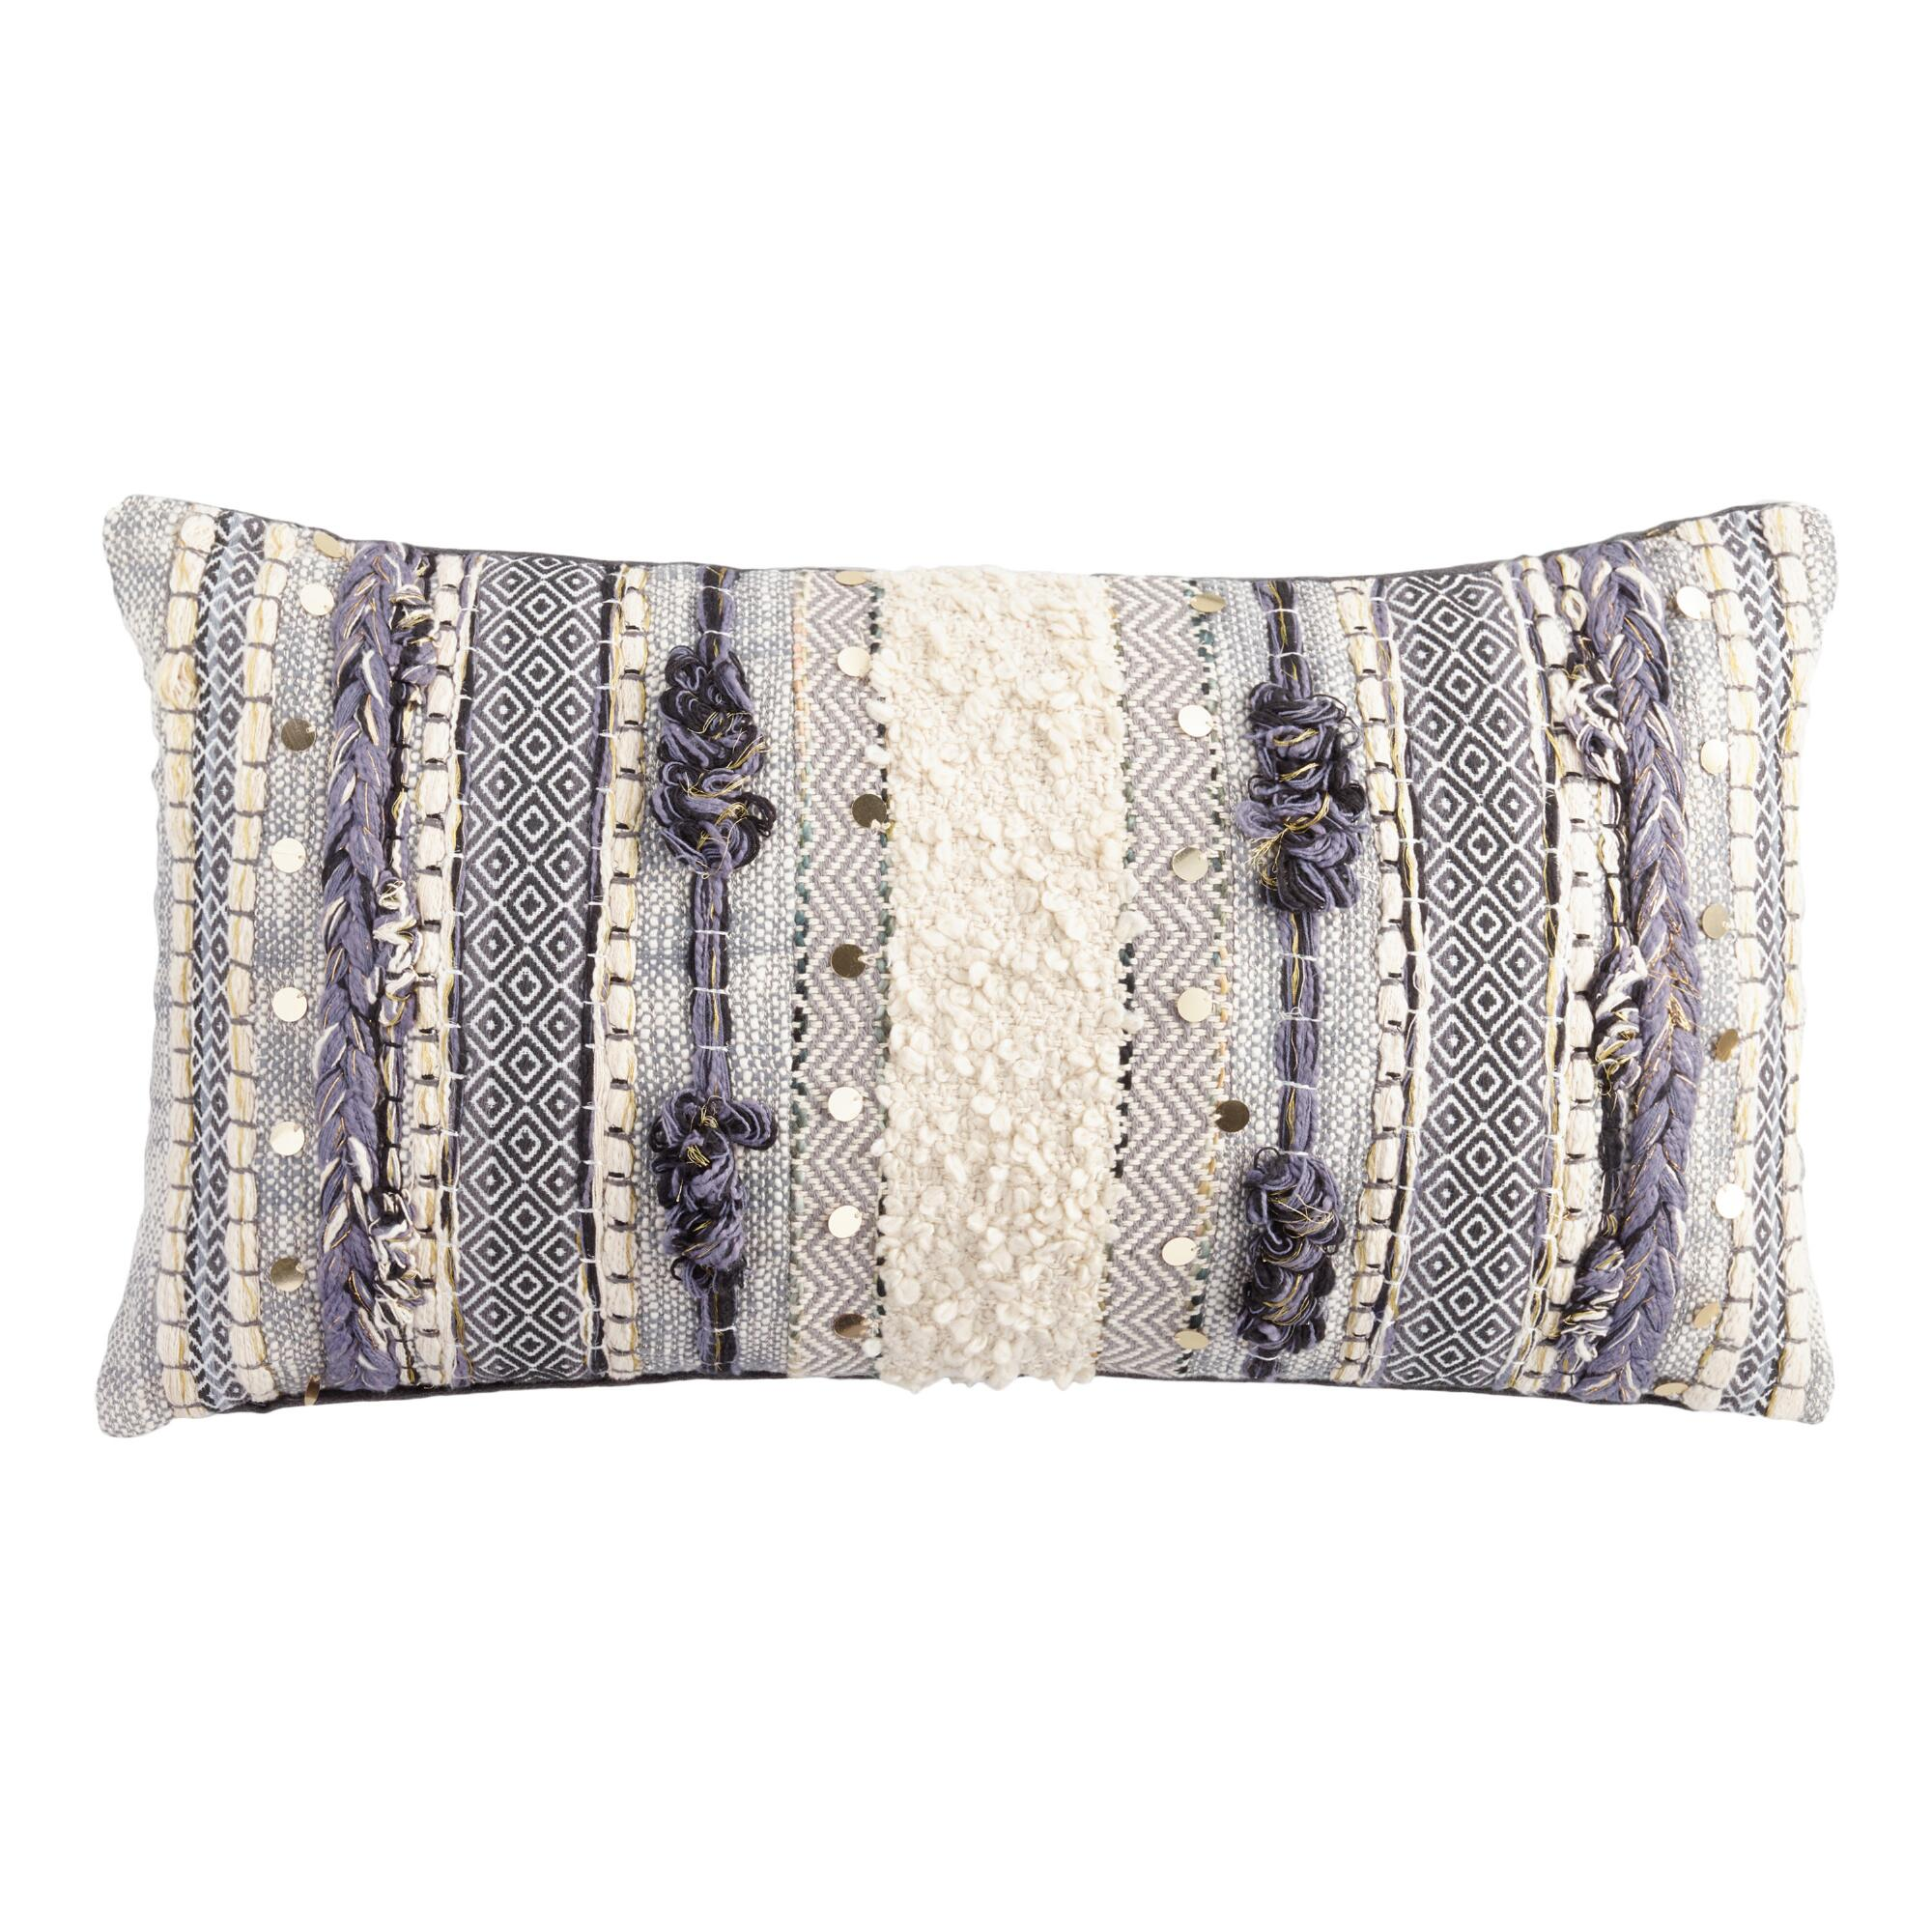 lee pillows pillow purple watersedge chairish pair belgian product jofa accent a grey velvet